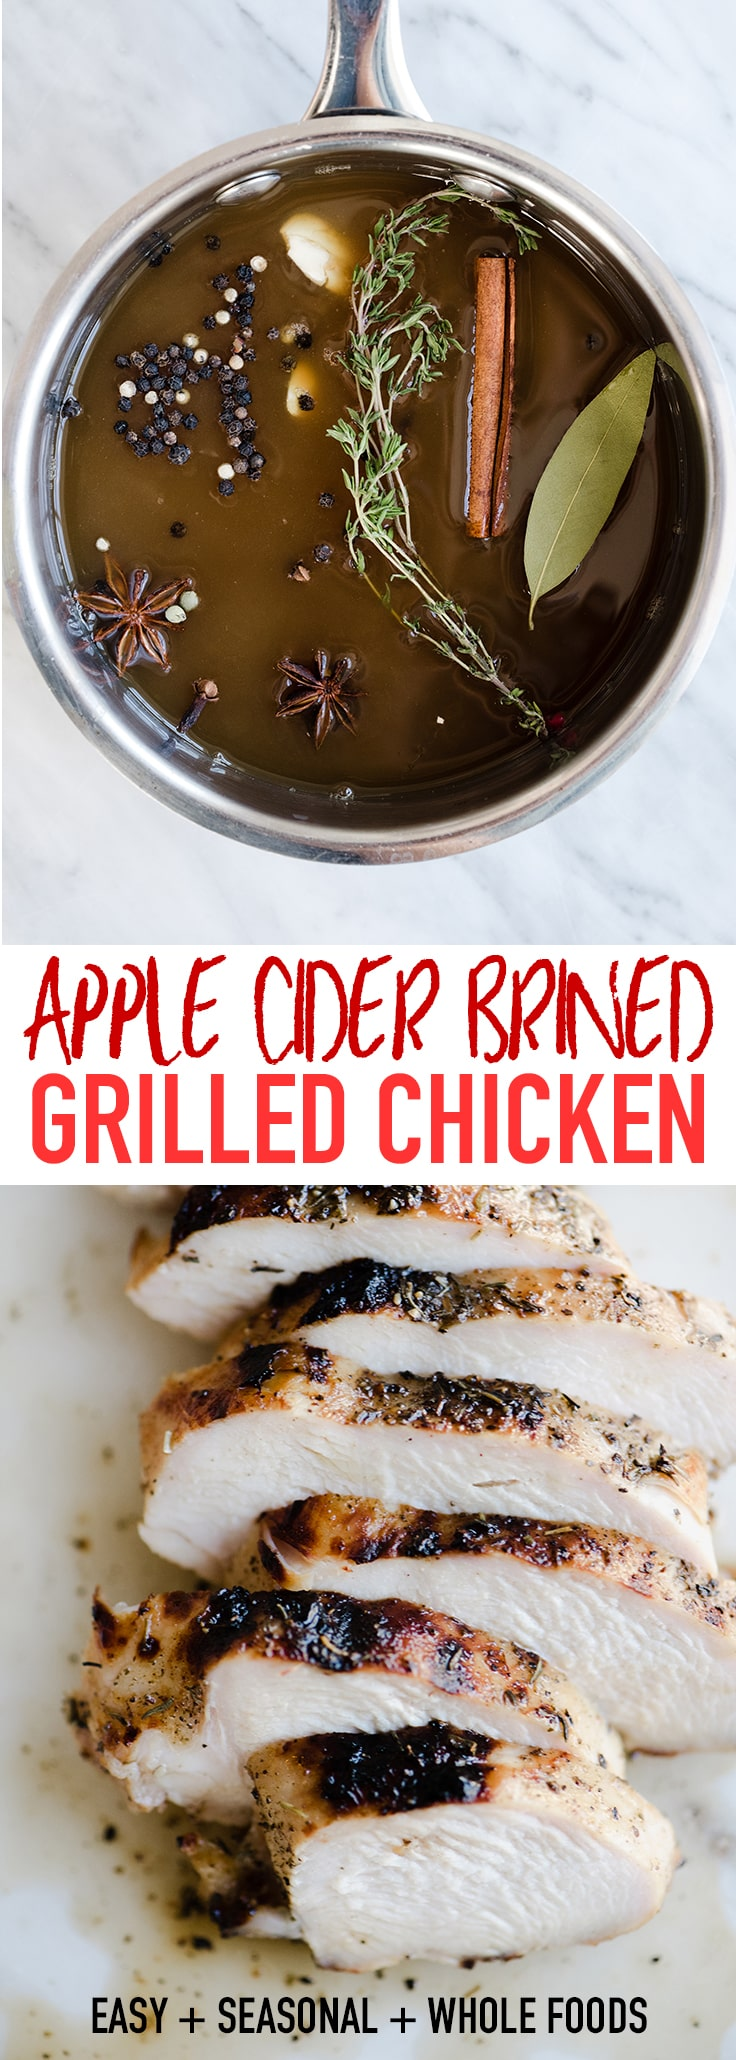 This apple cider chicken is THE BEST chicken I've ever made. Life. Changing. Chicken. The marinade is quick and easy, and the brined chicken grills up in 10 minutes to charred, juicy, sweet + savory perfection. This is a family friendly weeknight recipe that everyone will love! #chicken #applecider #paleo #wholefood #realfood